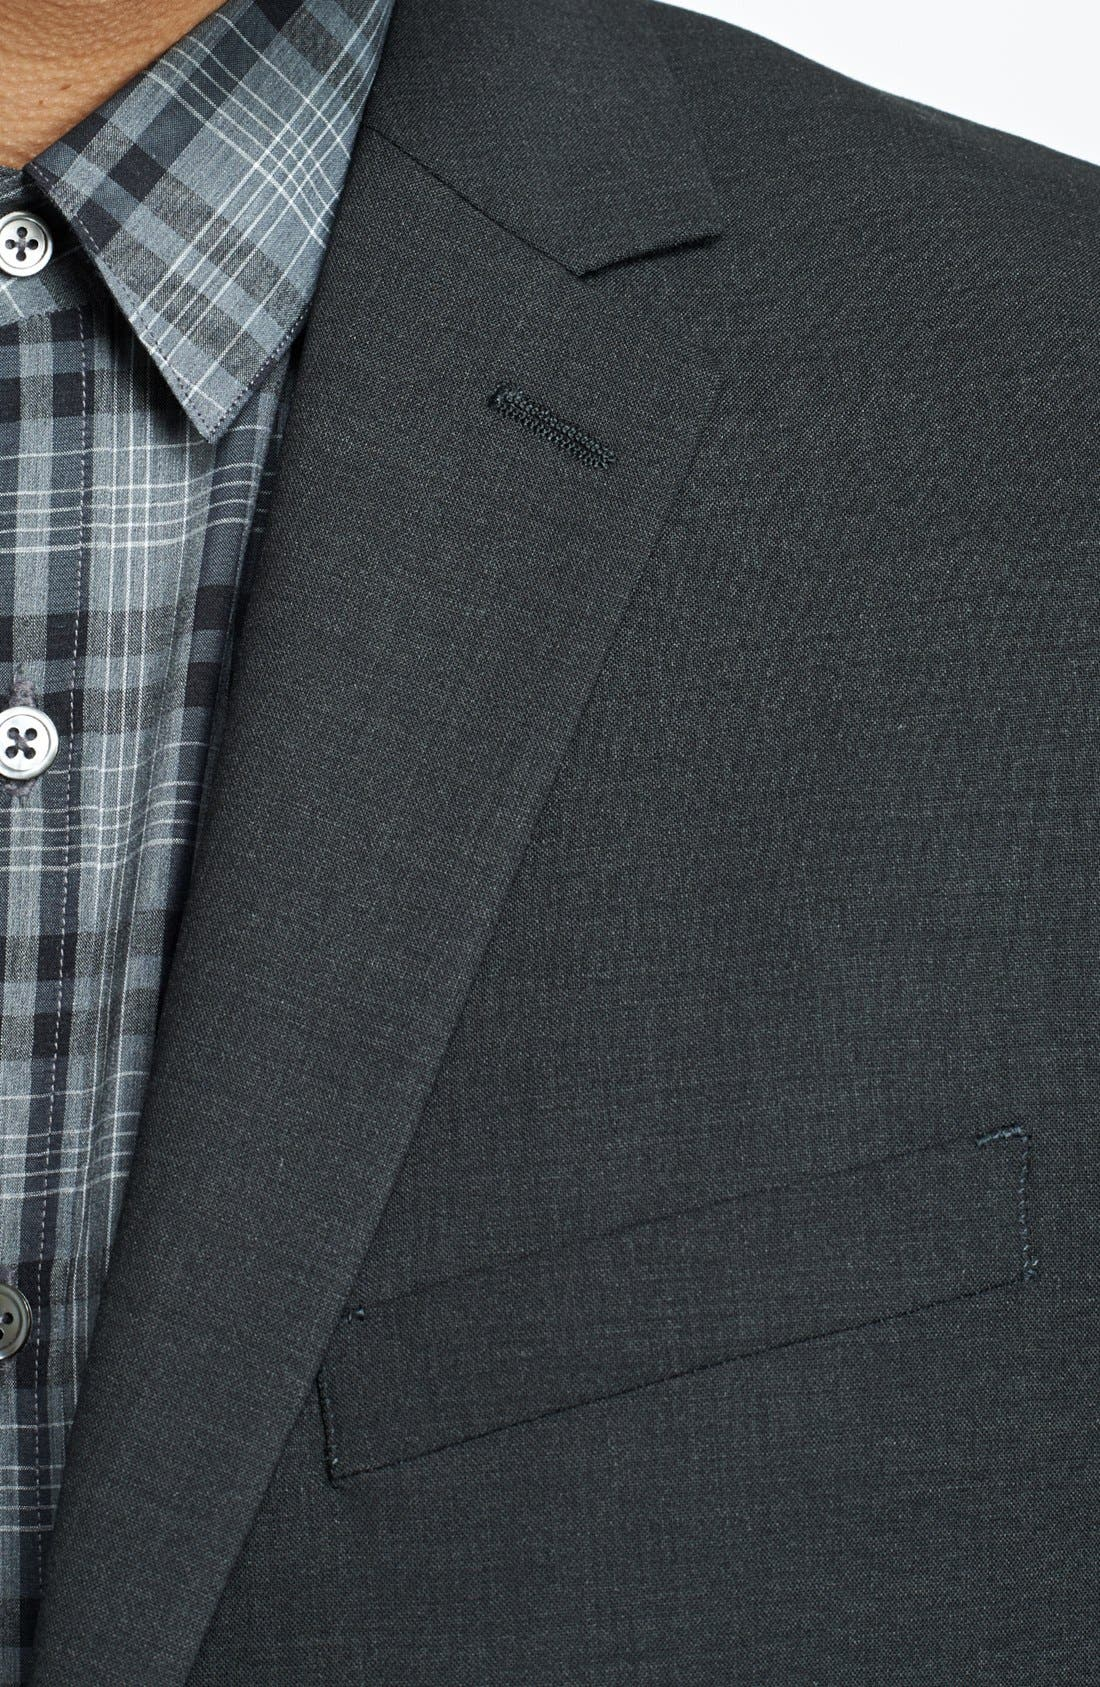 Alternate Image 3  - Theory 'Wellar New Tailor' Trim Fit Wool Blend Sport Coat